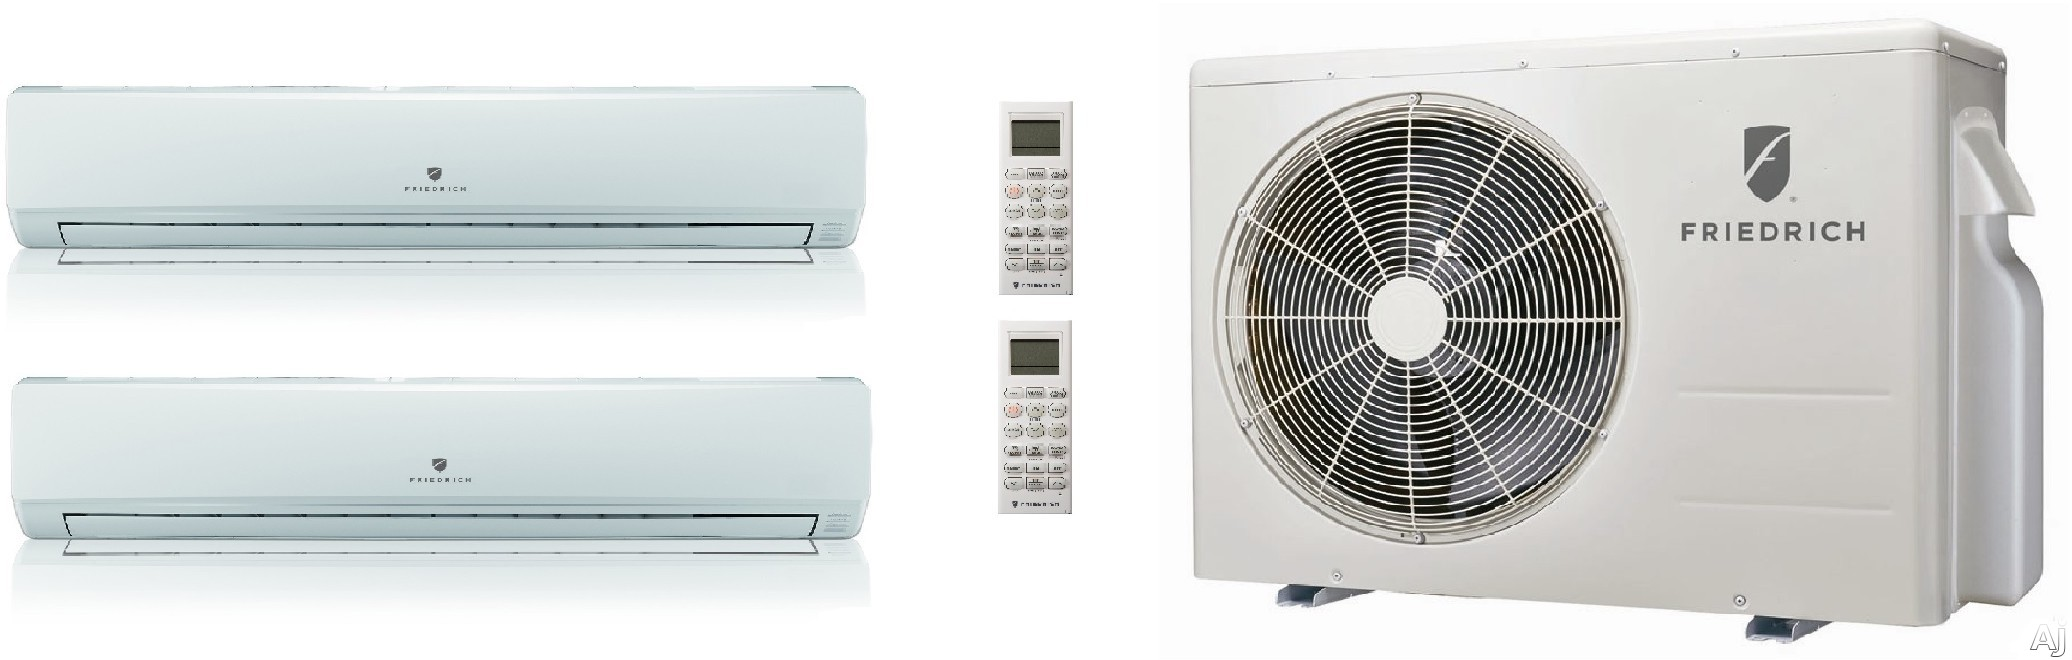 Friedrich FRIED24KB28 2 Room Mini Split System with Heat Pump, Inverter Technology, Cooling with Heat Pump, Low Ambient Operation, Auto Restart, R-410A Refrigerant and DiamonGold Advanced Corrosion Protection FRIED24KB28